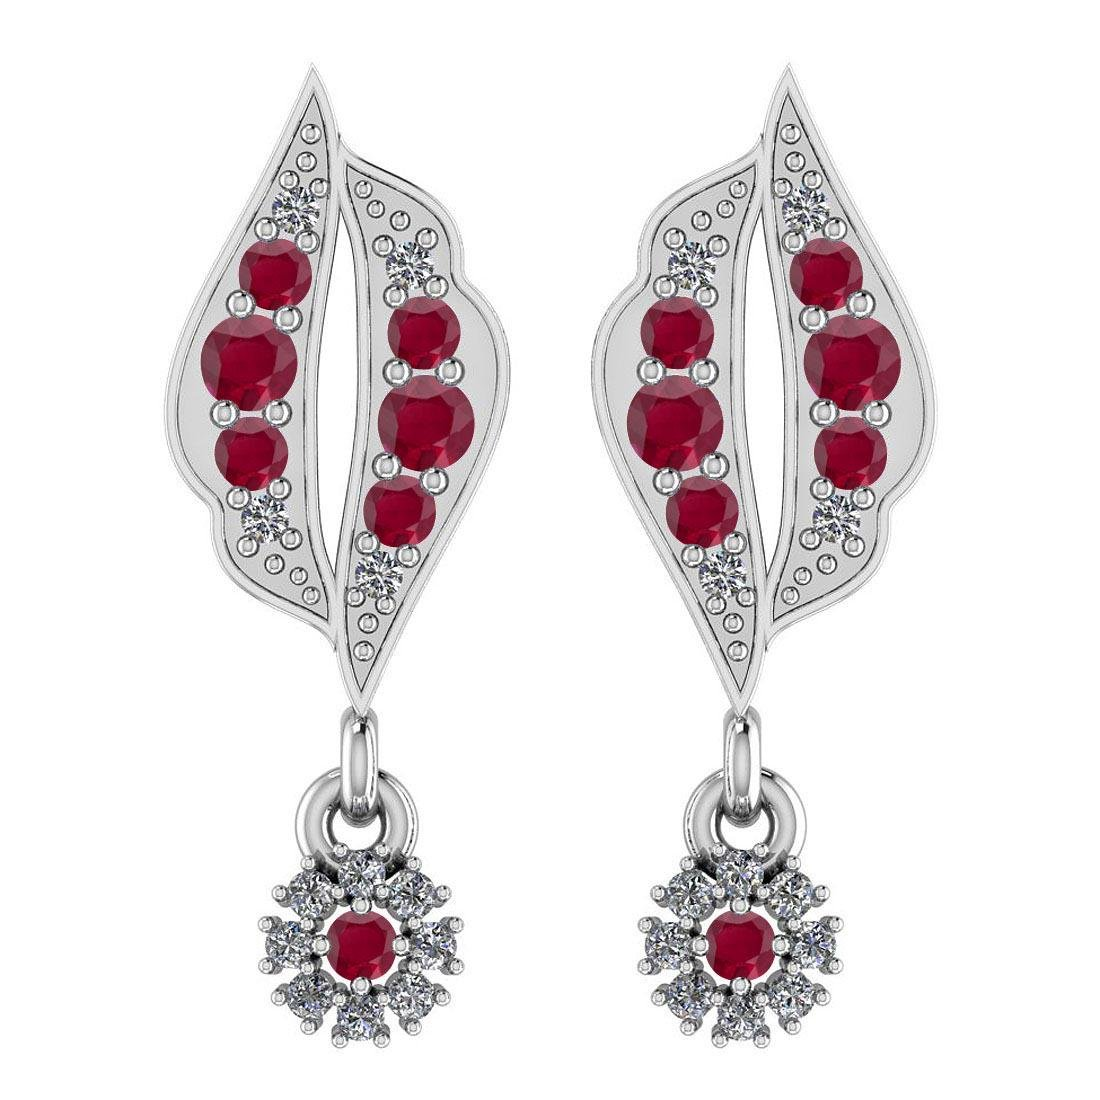 Certified 0.61 CTW Ruby And Diamond I1/I2 14K Gold Stud